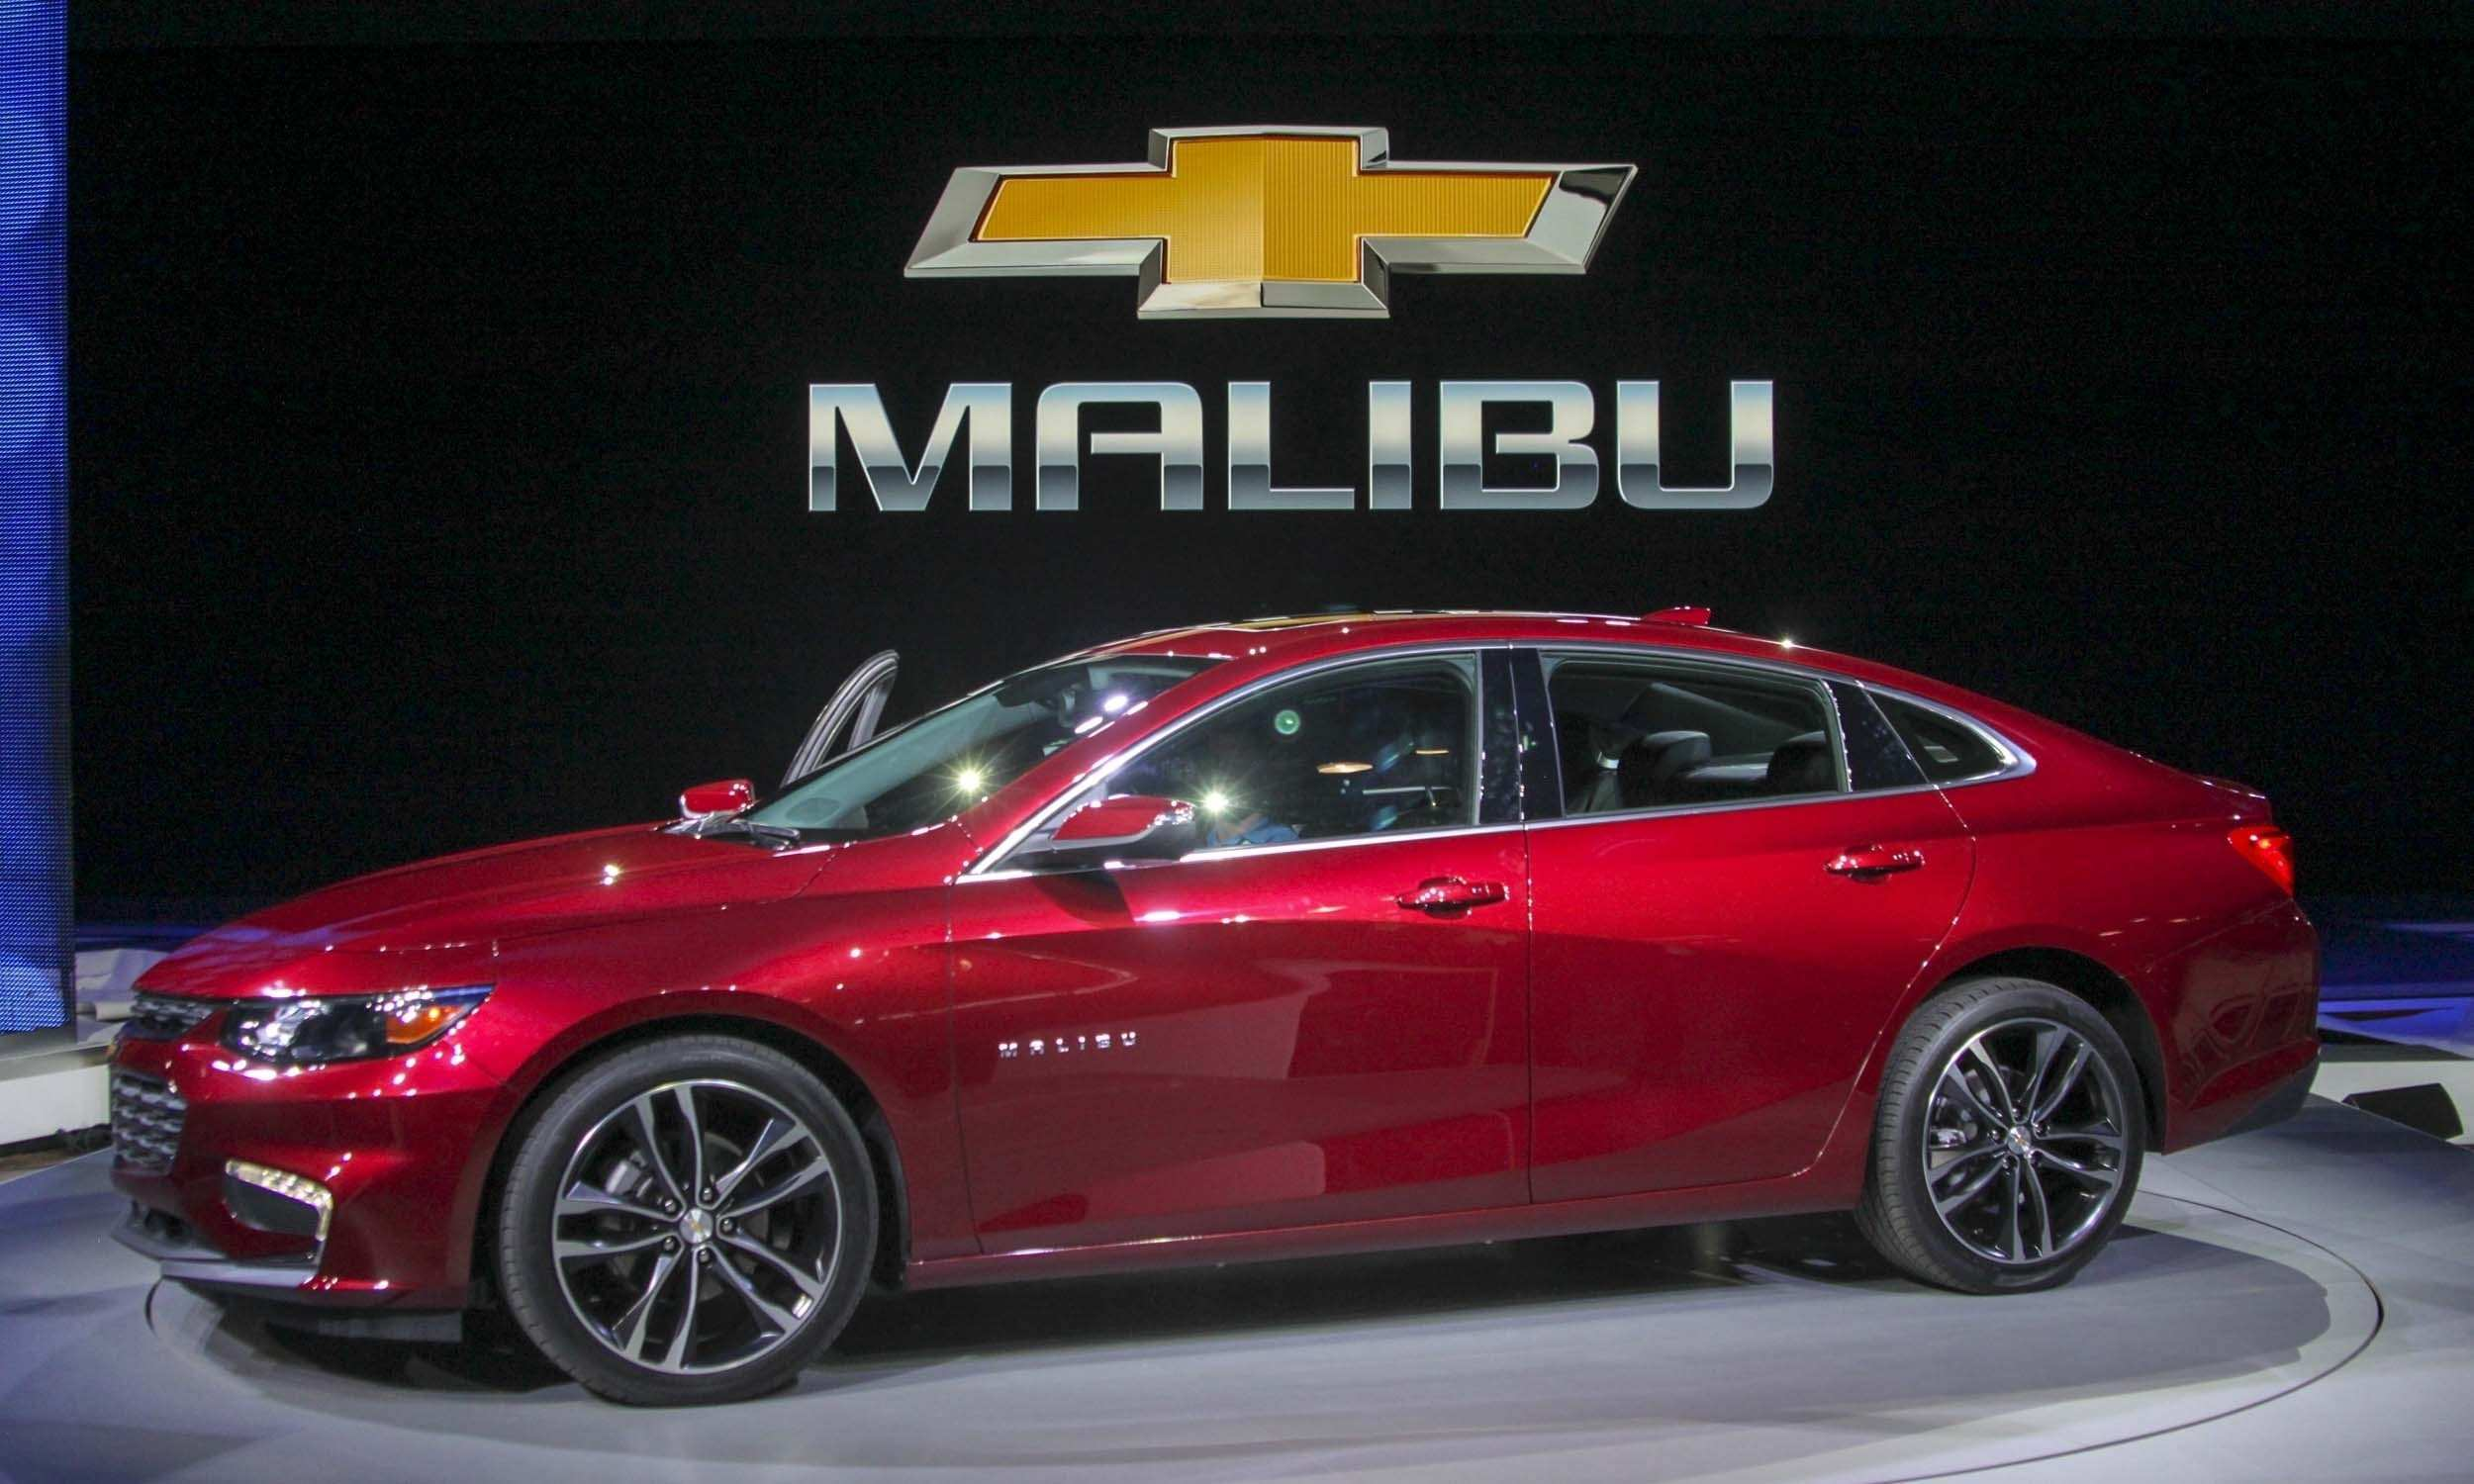 60 The New Chevrolet Malibu 2019 Release Date Exterior And Interior Review Overview by New Chevrolet Malibu 2019 Release Date Exterior And Interior Review